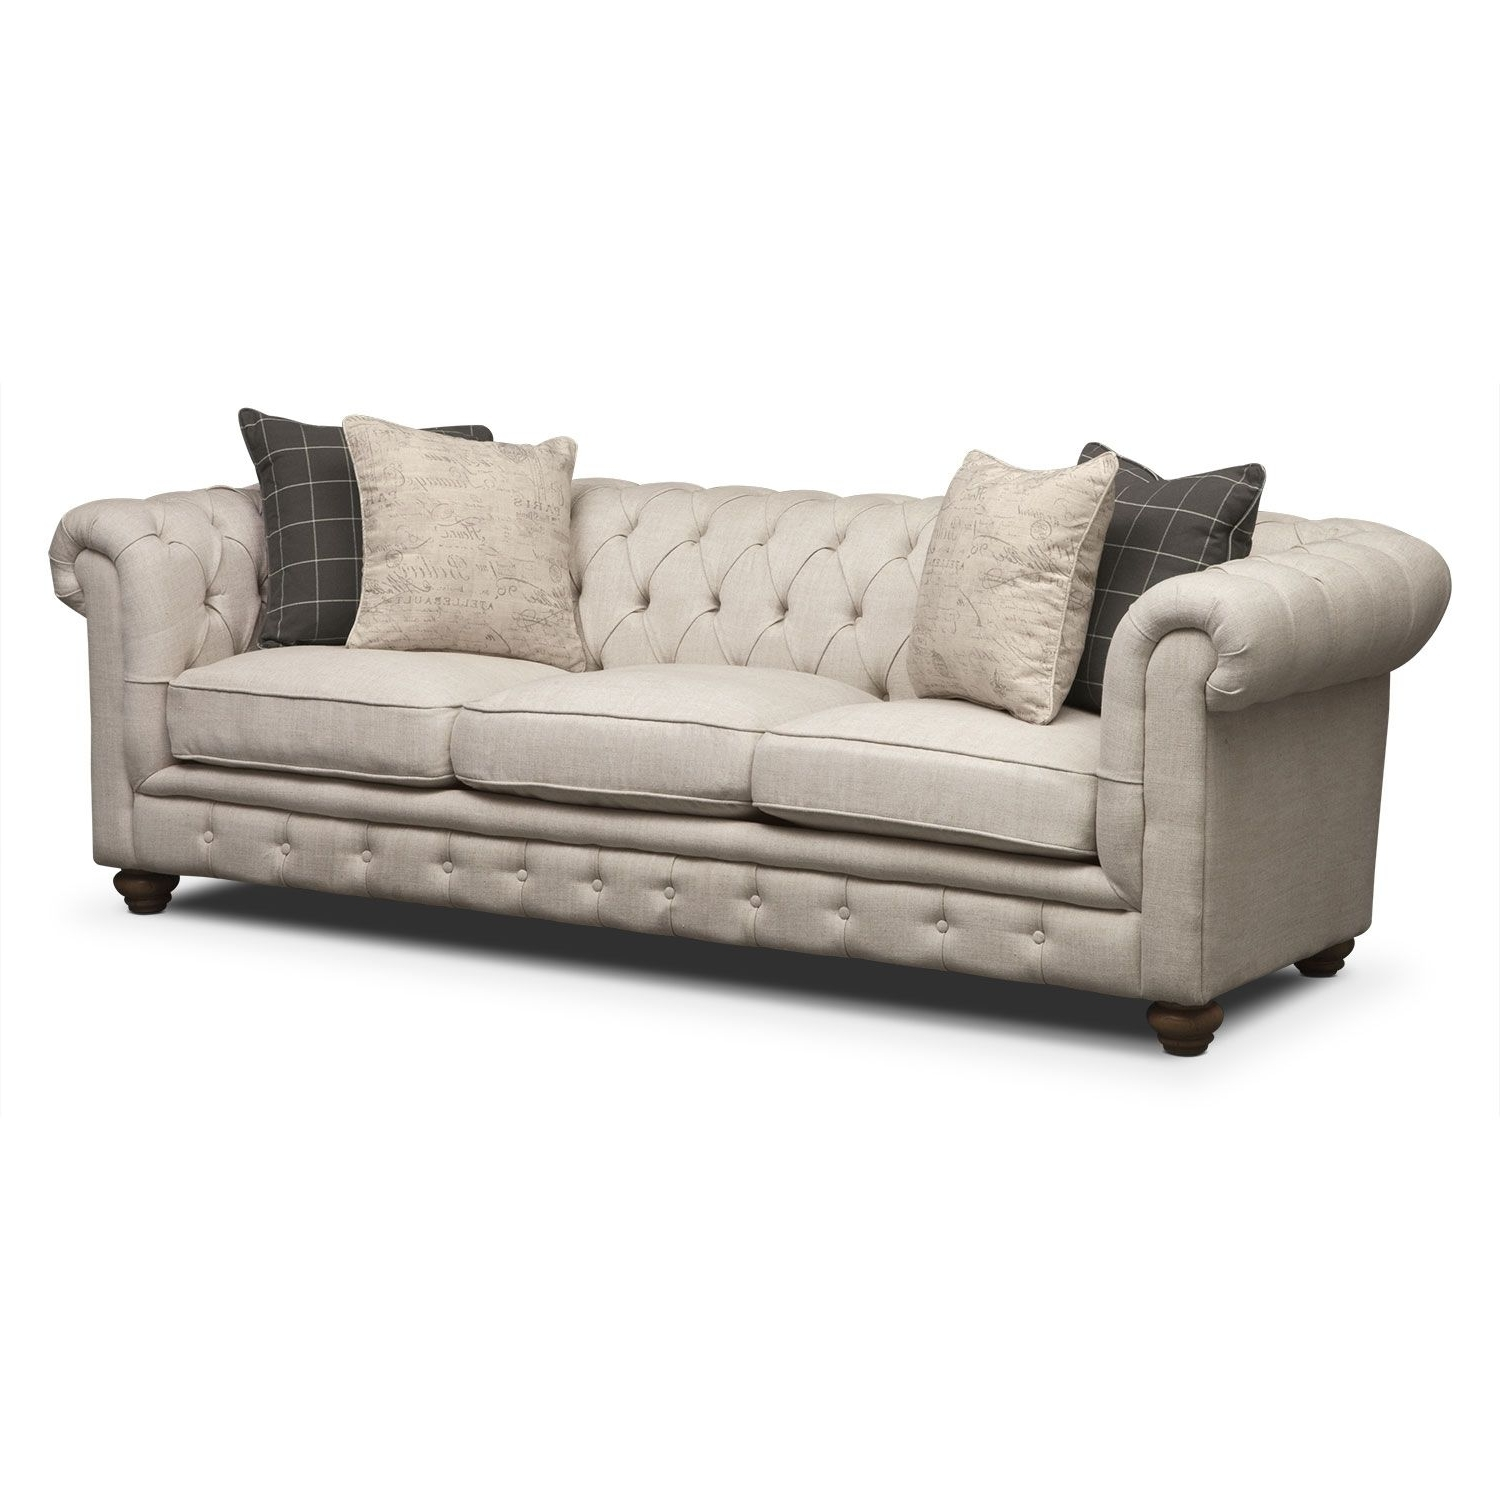 Value City Sofas Regarding Current Living Room Furniture – Madeline Sofa; $799. Living Room (View 11 of 15)